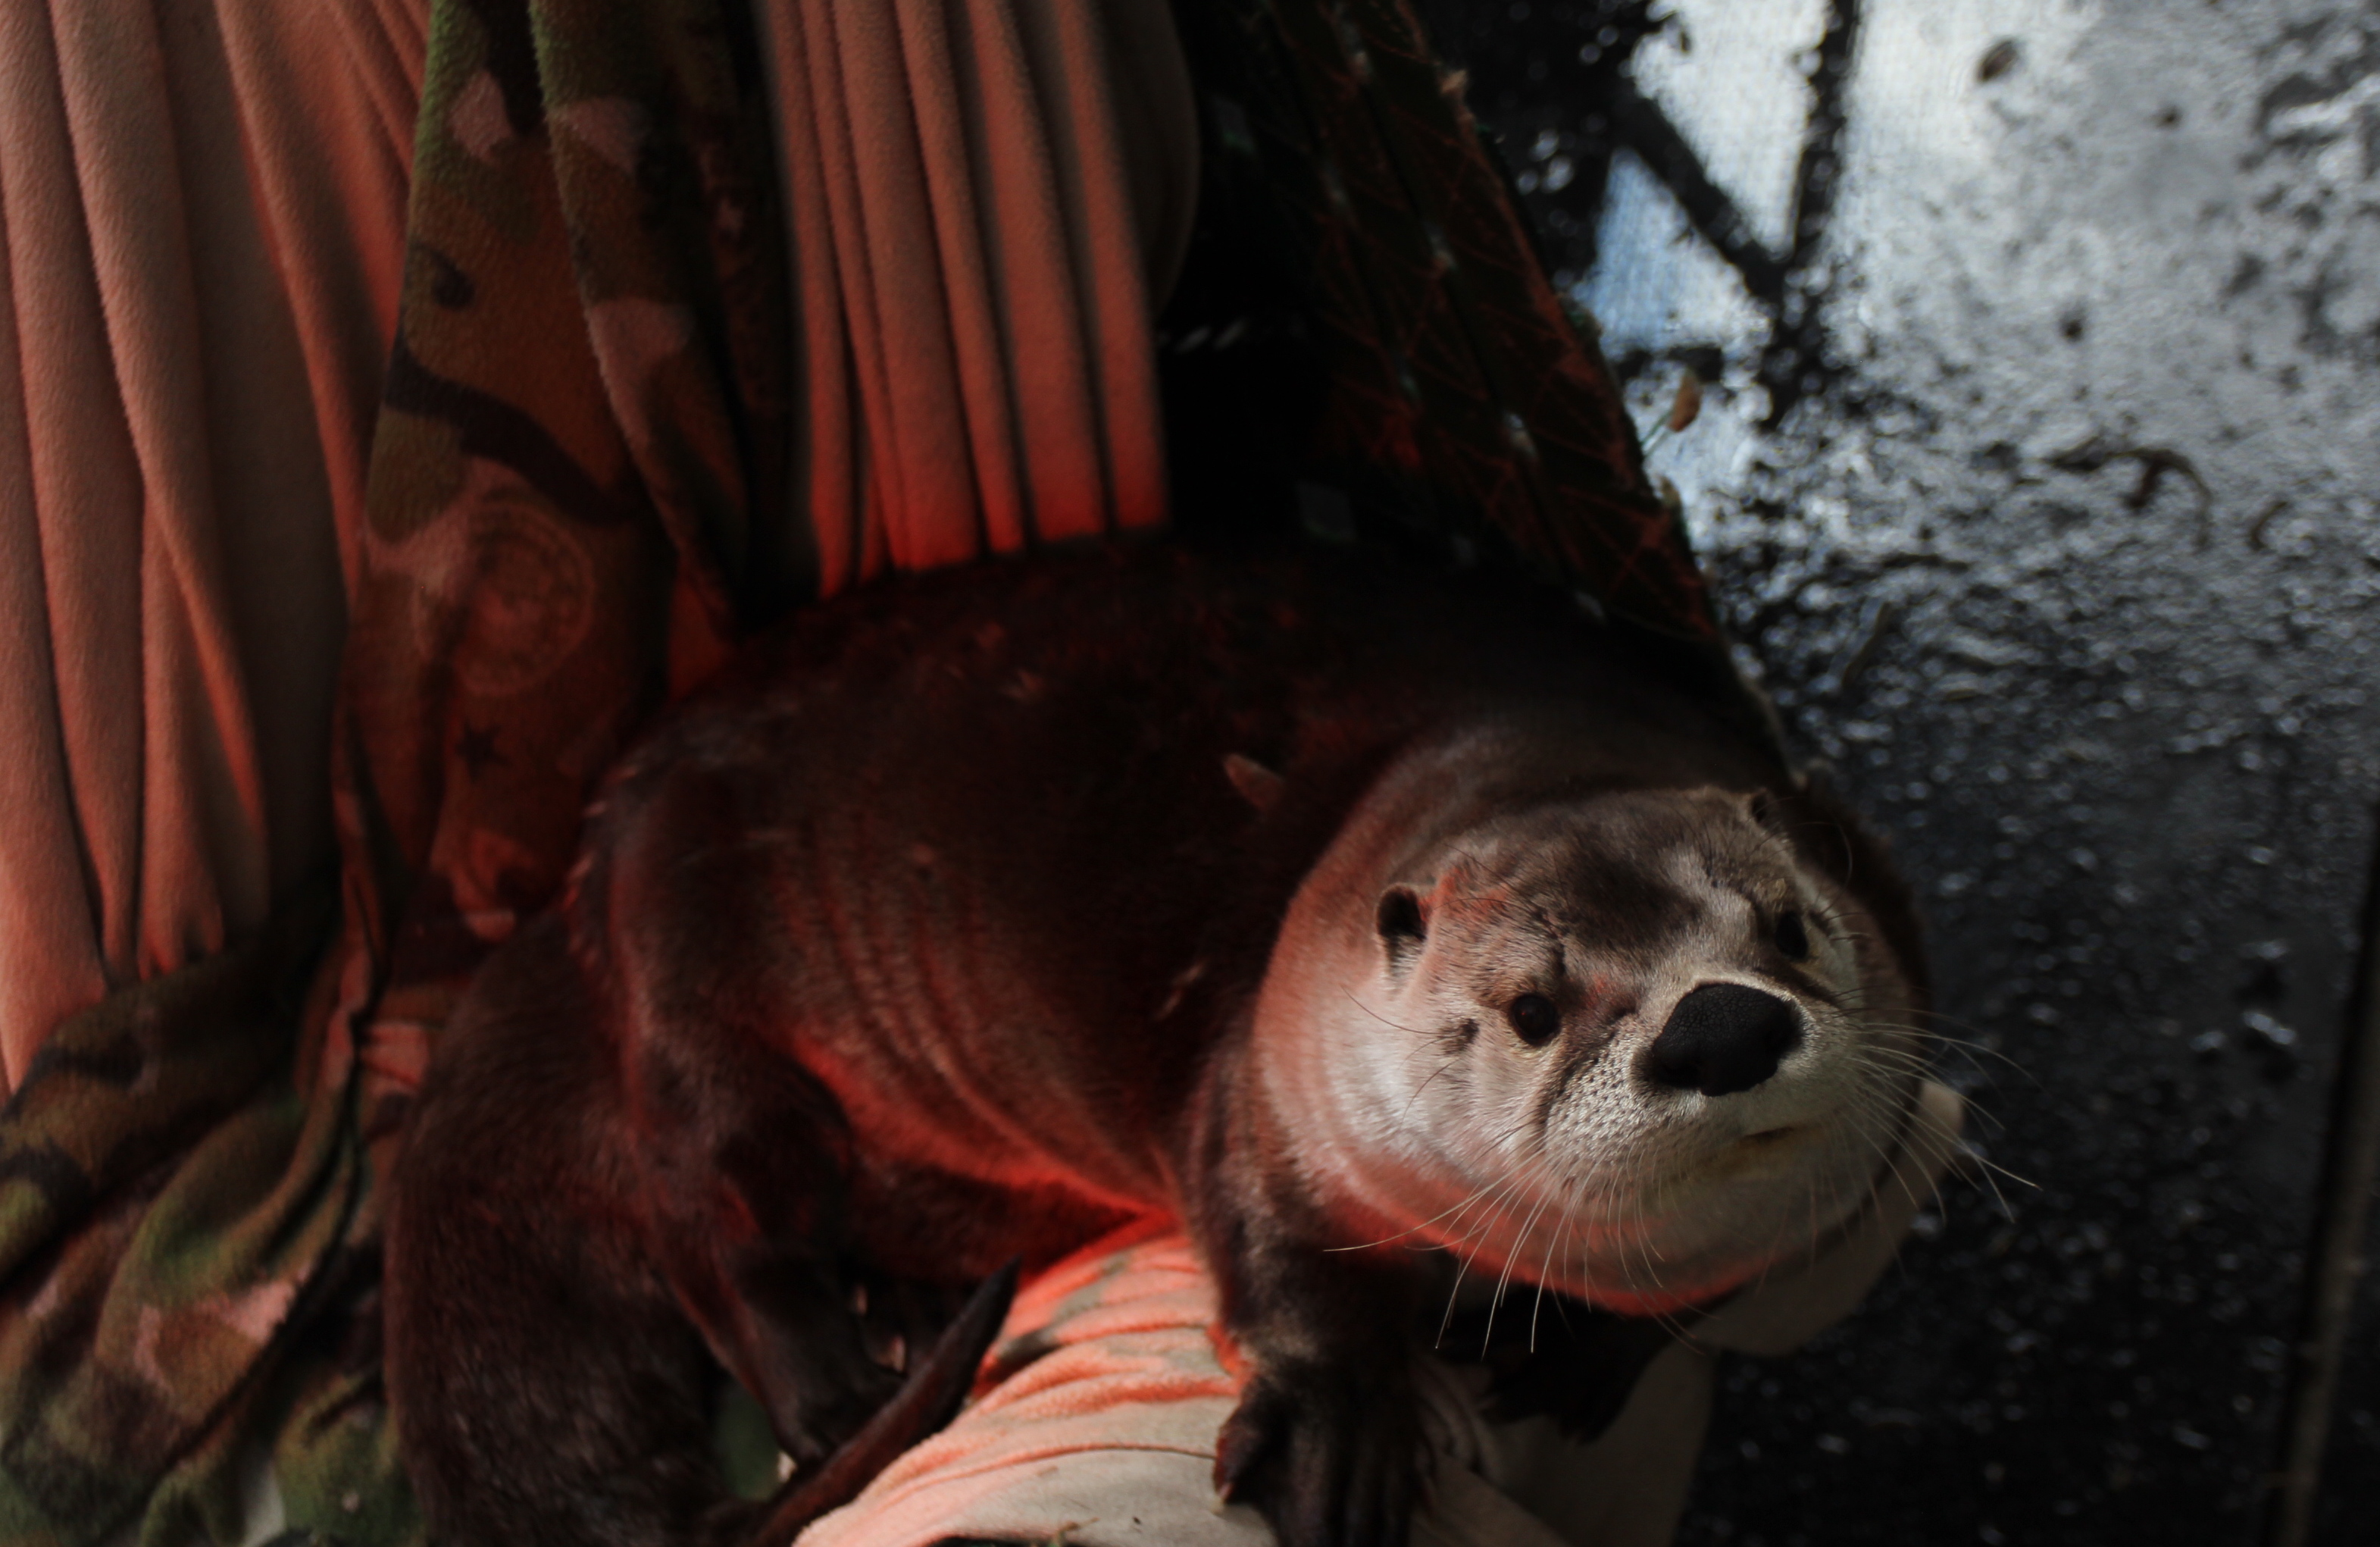 A closeup of Louie the otter reclining under a heat lamp in an enclosure at The Wild Center.